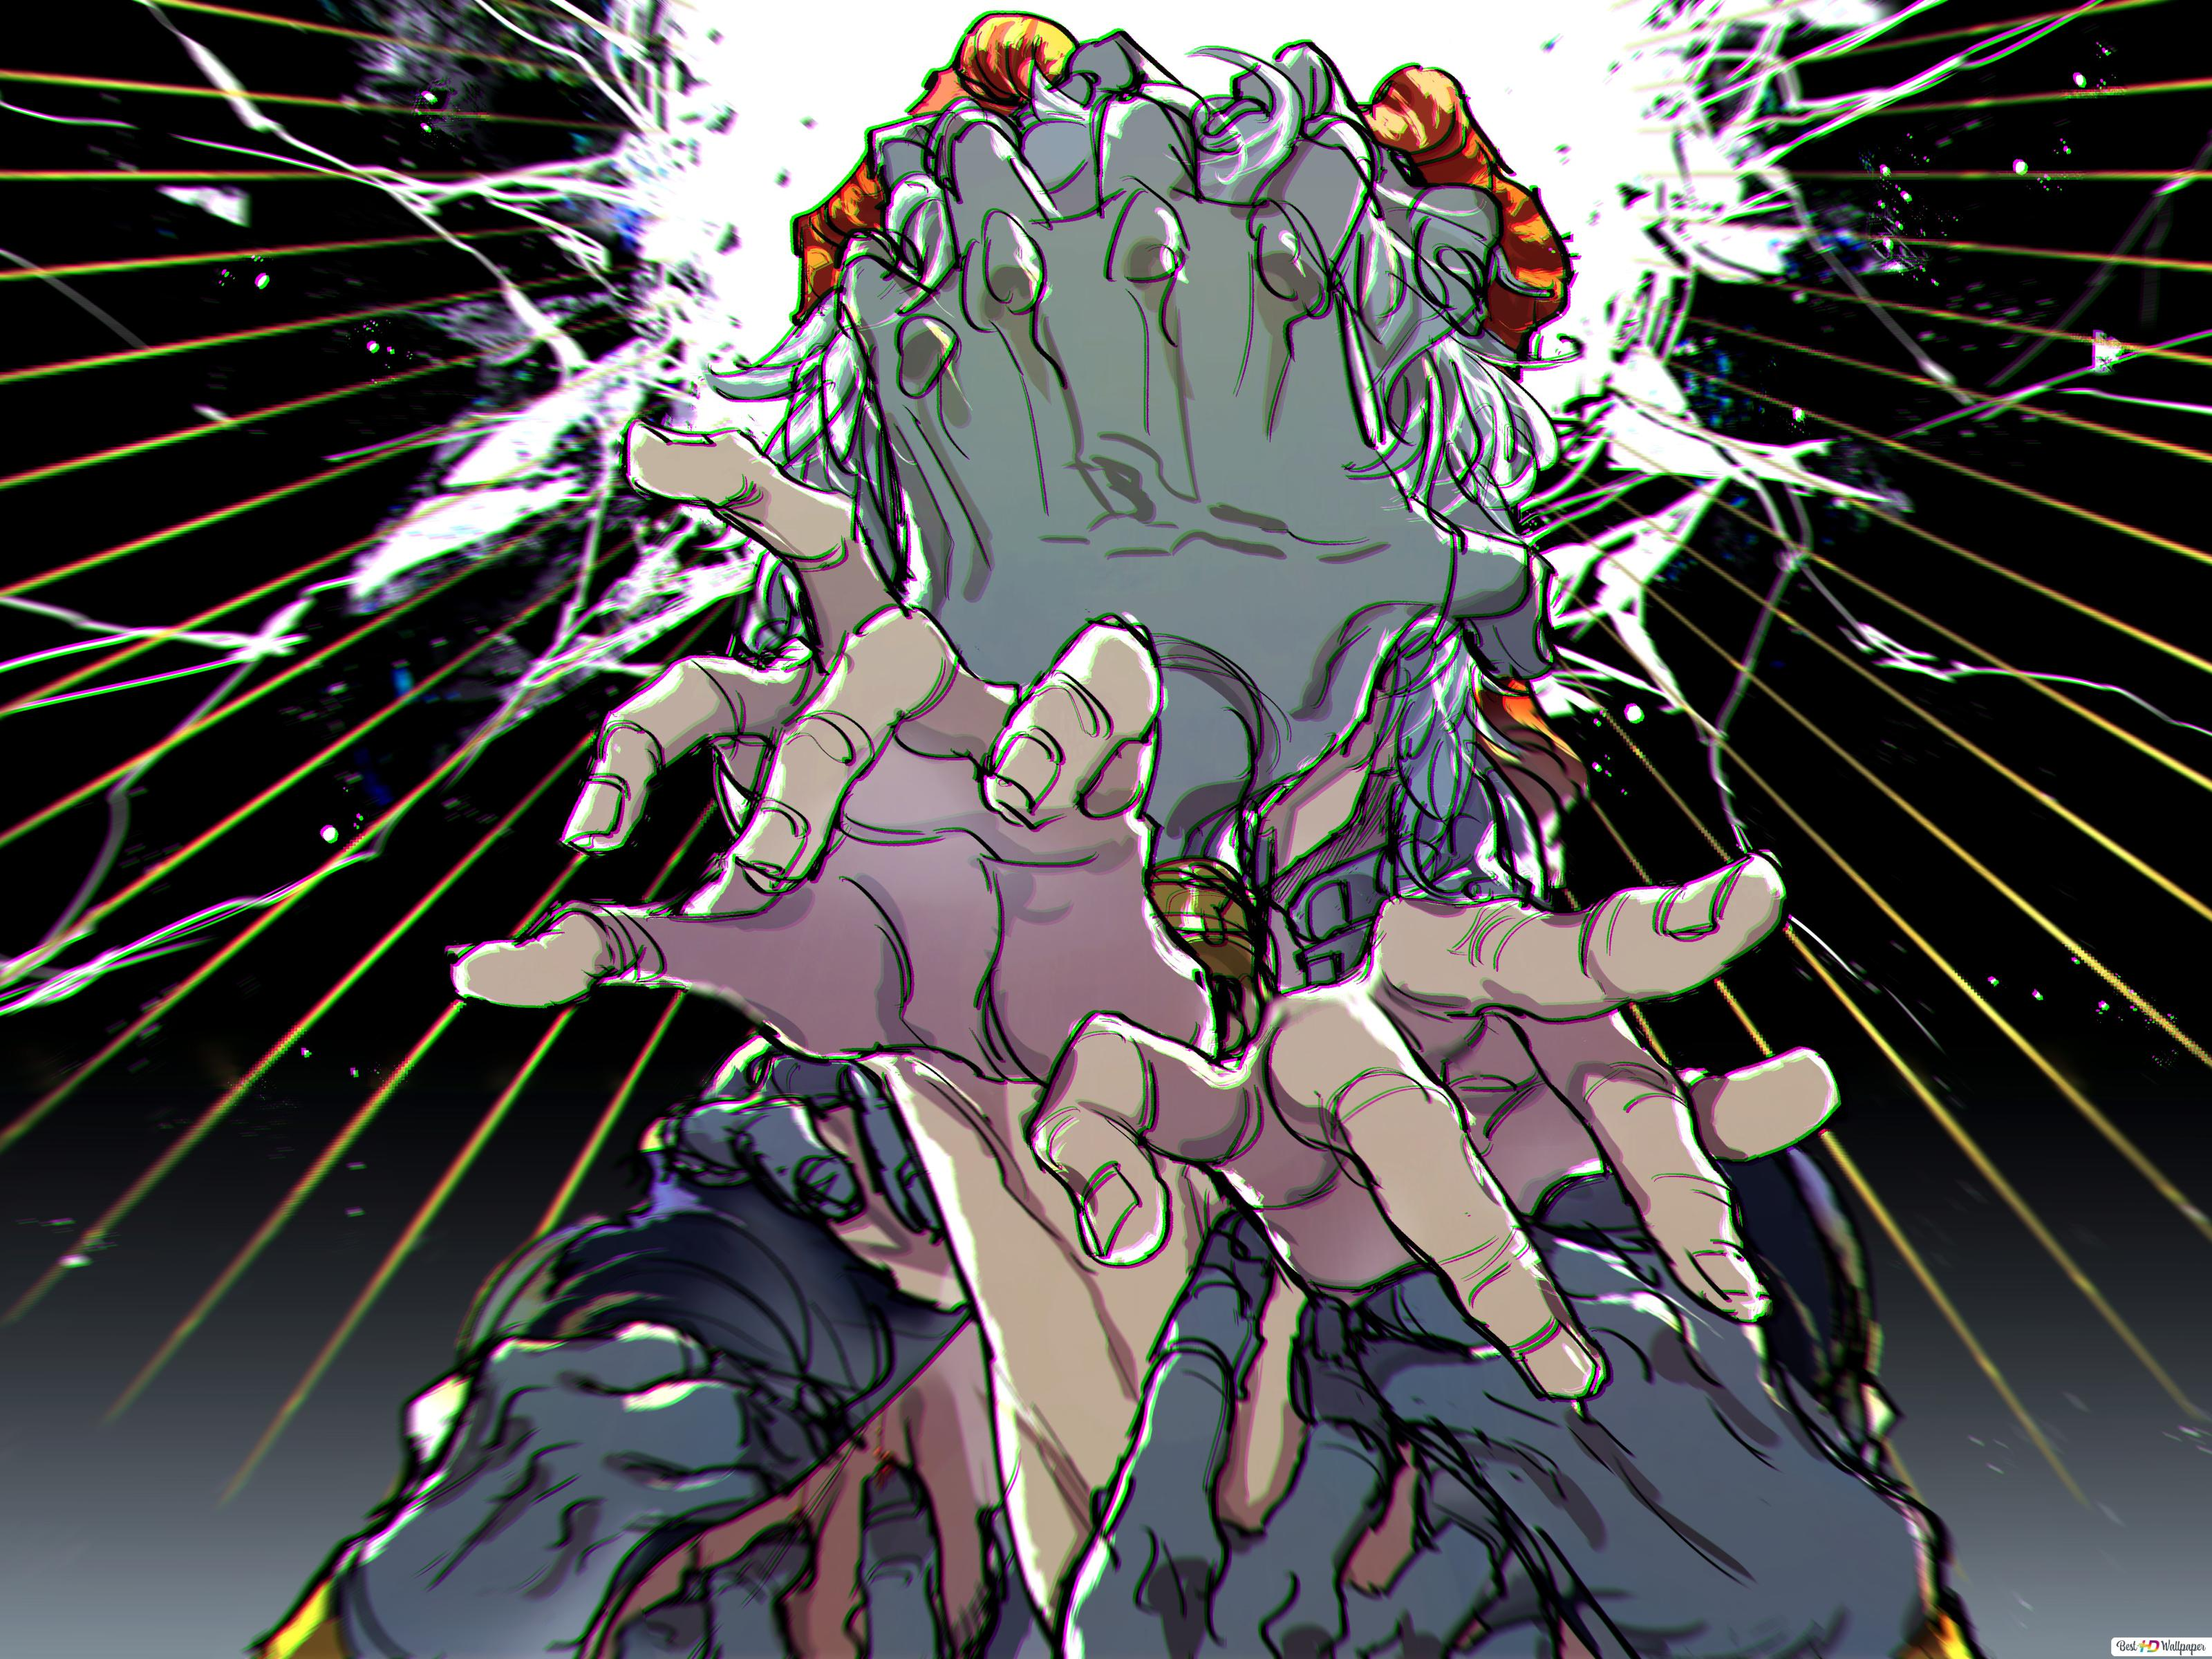 My Hero Academia Tomura Shigaraki Villain Hd Wallpaper Download